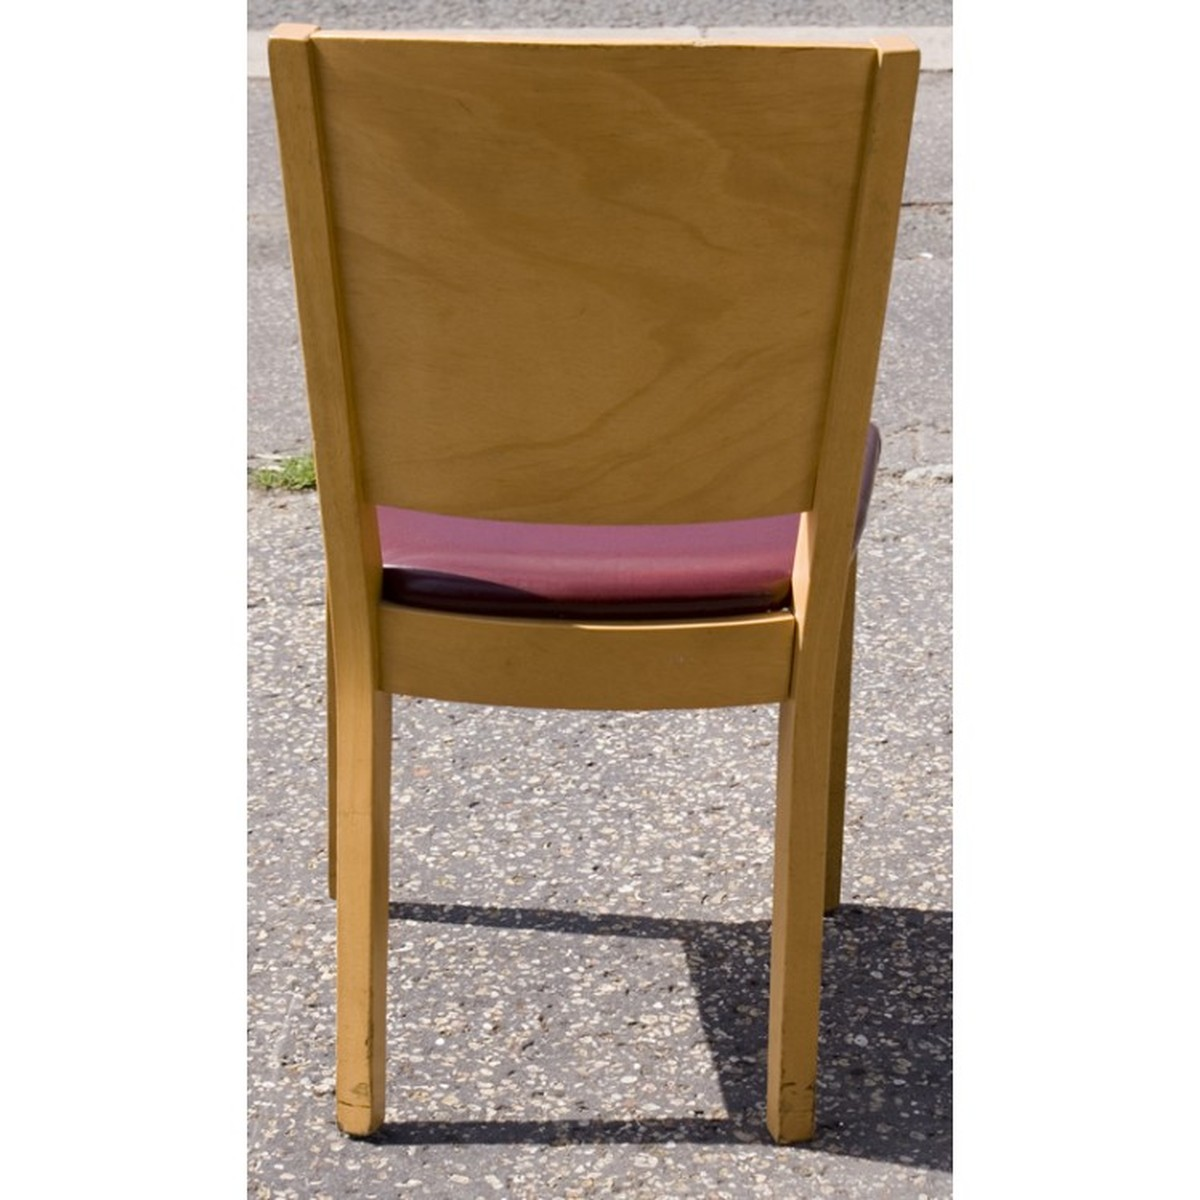 Refurbished Chairs Secondhand Hotel Furniture Dining Chairs Refurbished